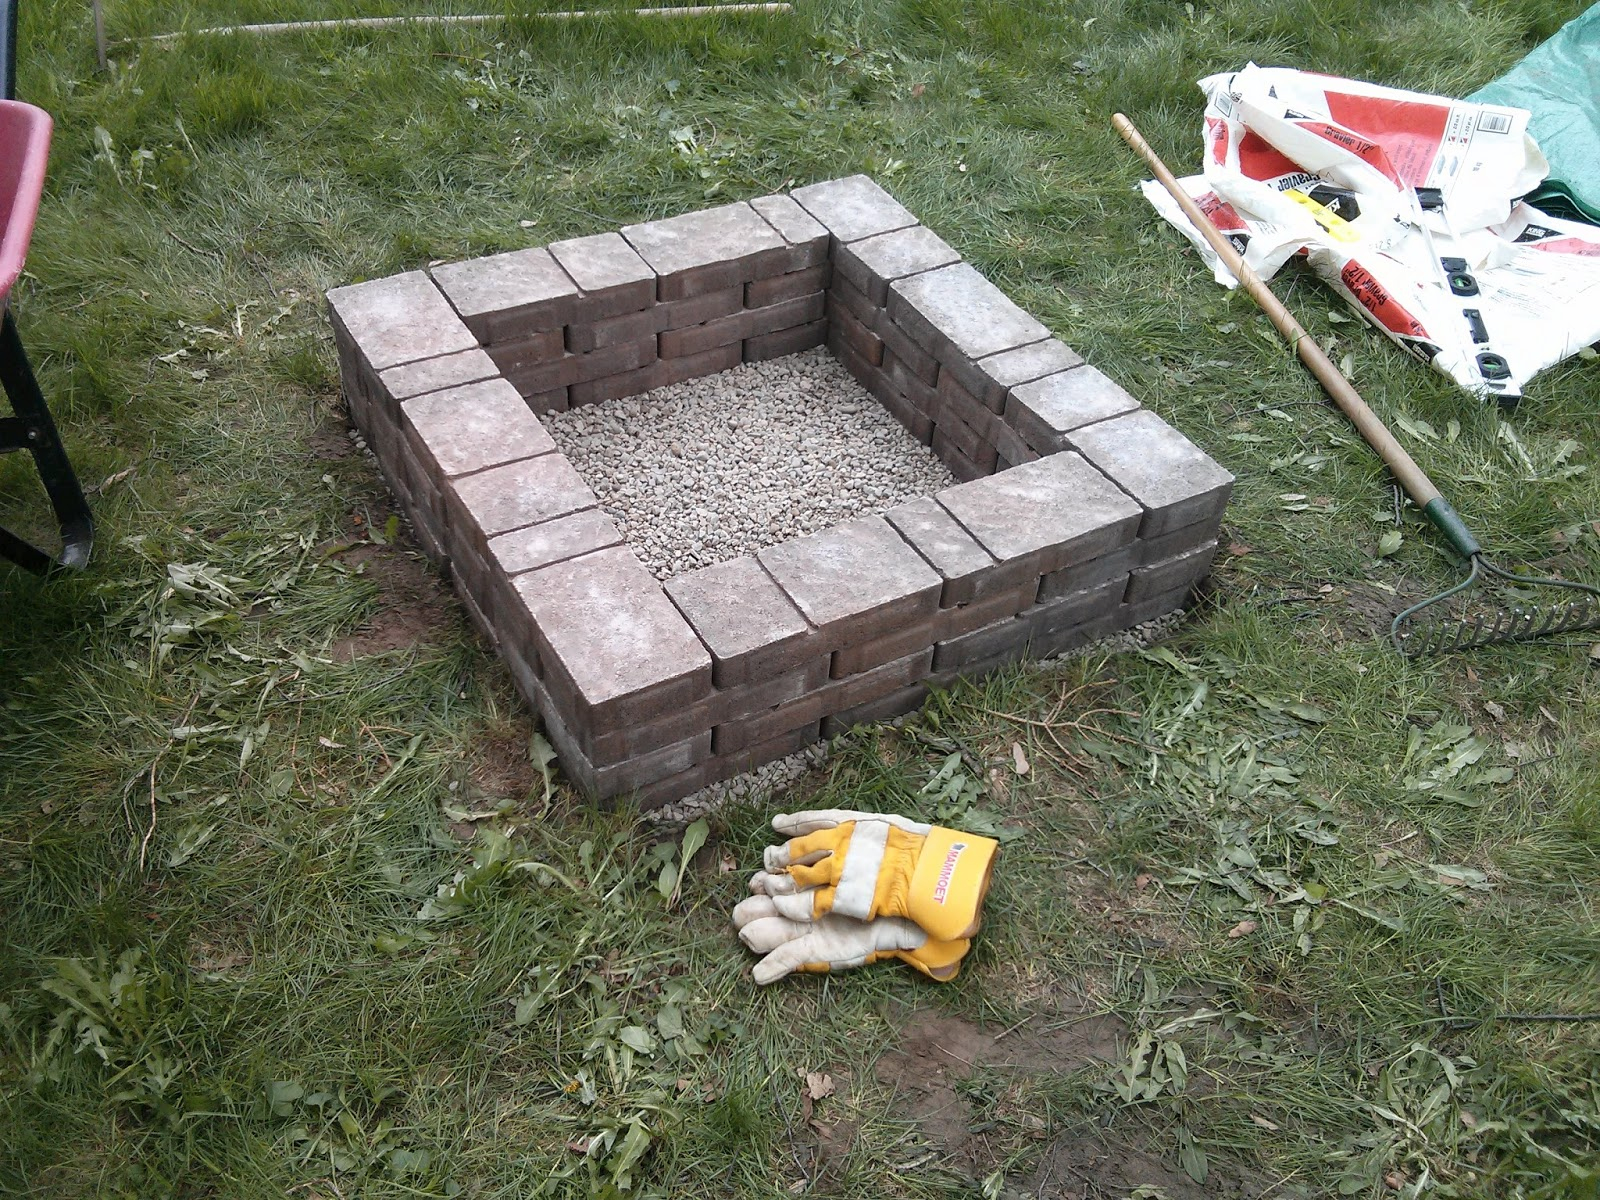 Divinely Gifted: Mothers Day DIY Fire Pit